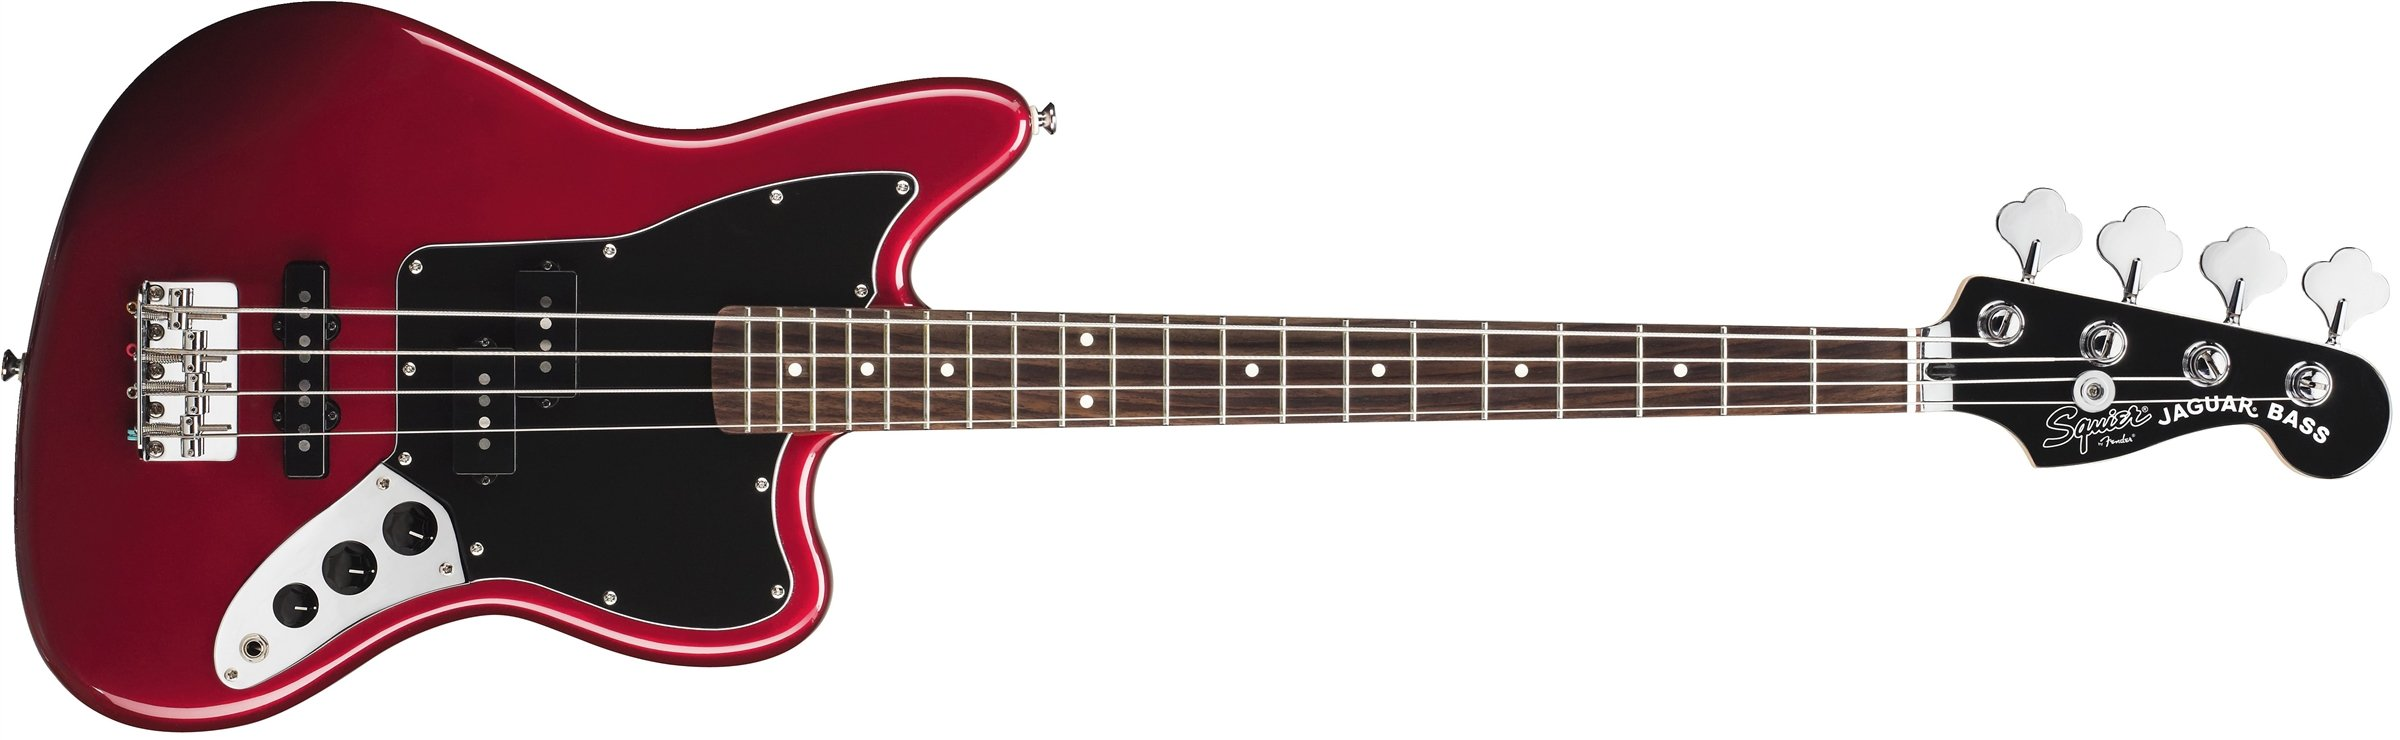 Squier by Fender Vintage SS Modified Special Jaguar Bass - Candy Apple Red by Fender